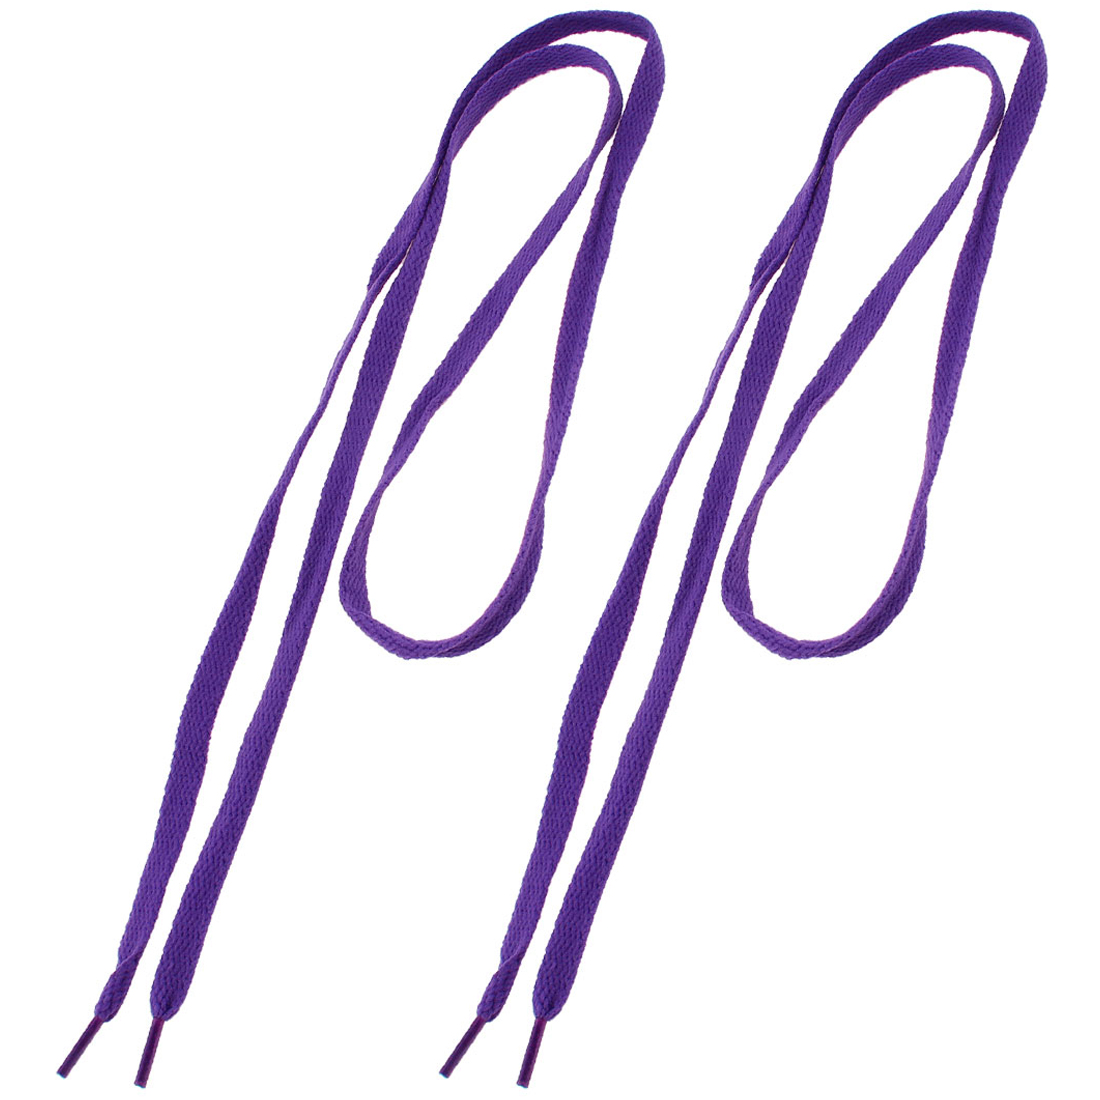 Plastic Tip Nylon Flat Shoelaces Purple 114 cm Length 1 Pair